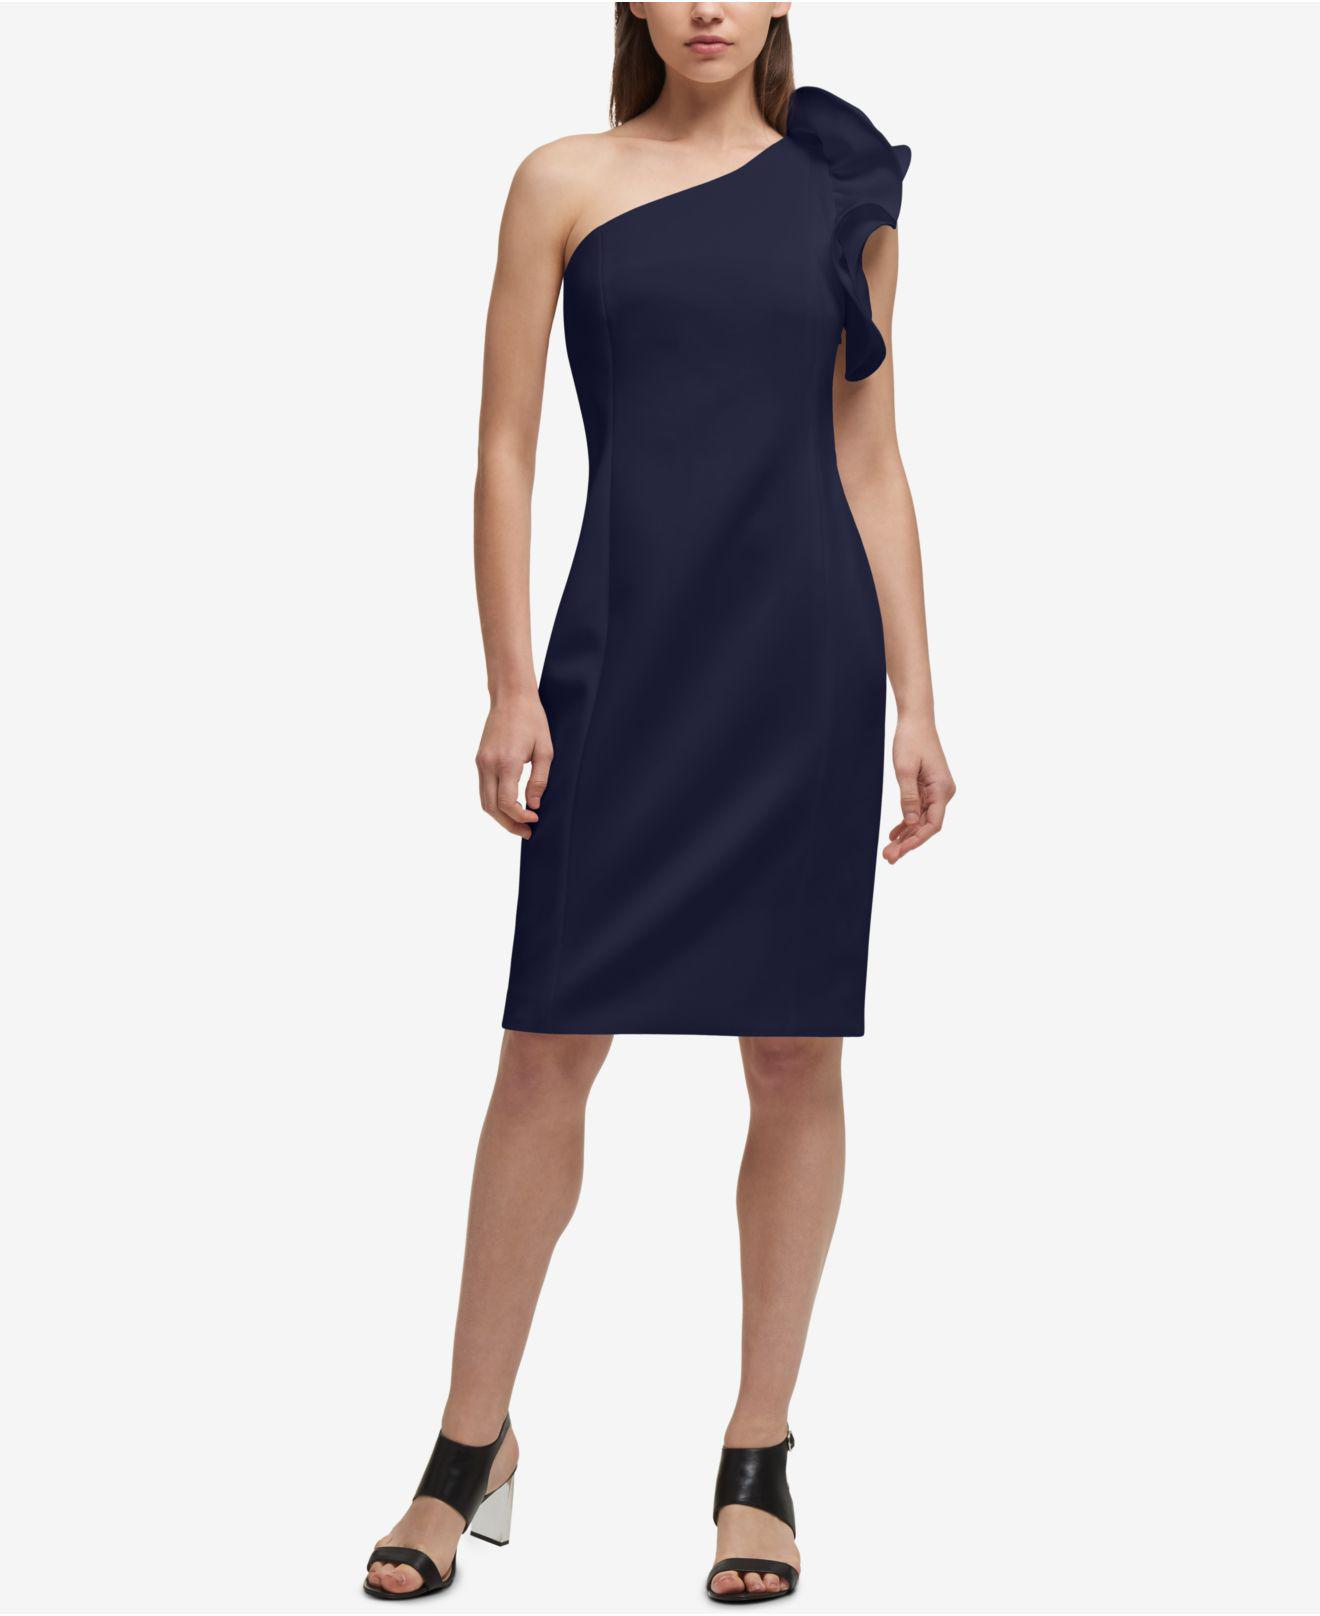 Lyst - Dkny One-shoulder Sheath Dress, Created For Macy\'s in Blue